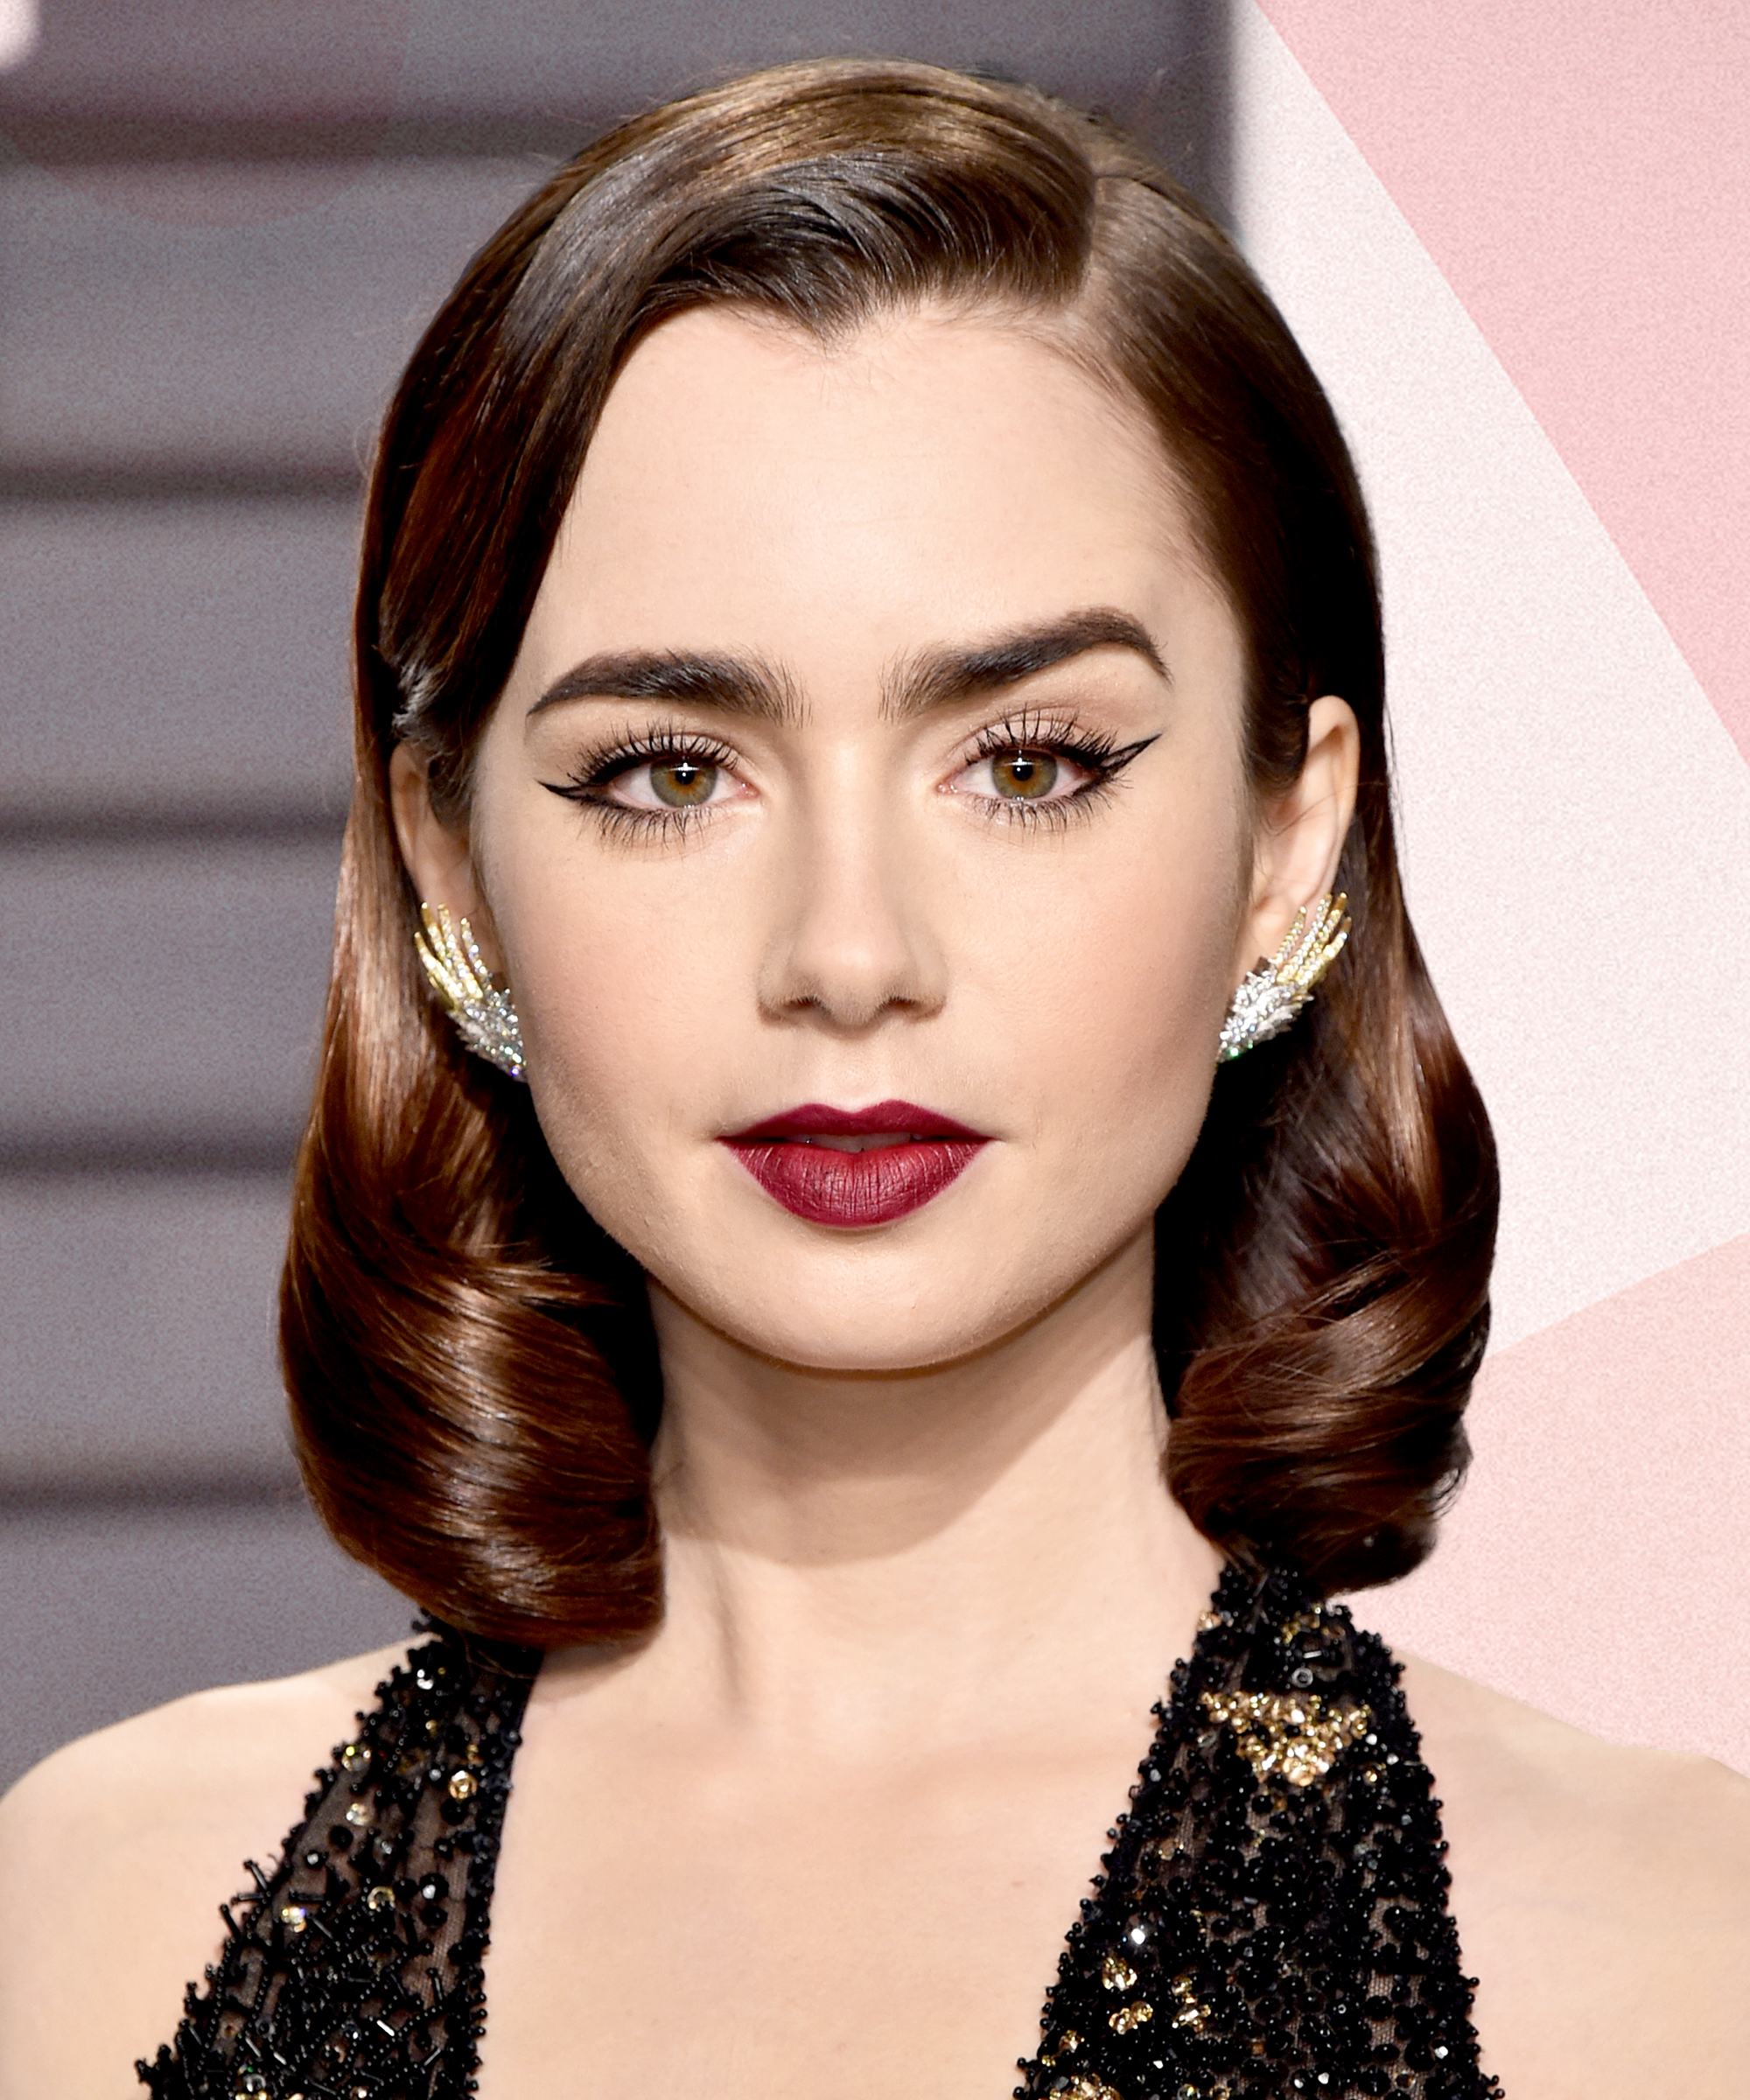 lily collins gif huntlily collins gif, lily collins insta, lily collins tumblr, lily collins gif hunt, lily collins i believe in love, lily collins фильмы, lily collins wiki, lily collins malibu magazine, lily collins wallpaper, lily collins instagram, lily collins i believe in love скачать, lily collins and zac efron, lily collins i believe in love mp3, lily collins movies, lily collins height, lily collins boyfriend, lily collins 2019, lily collins films, lily collins short hair, lily collins vk